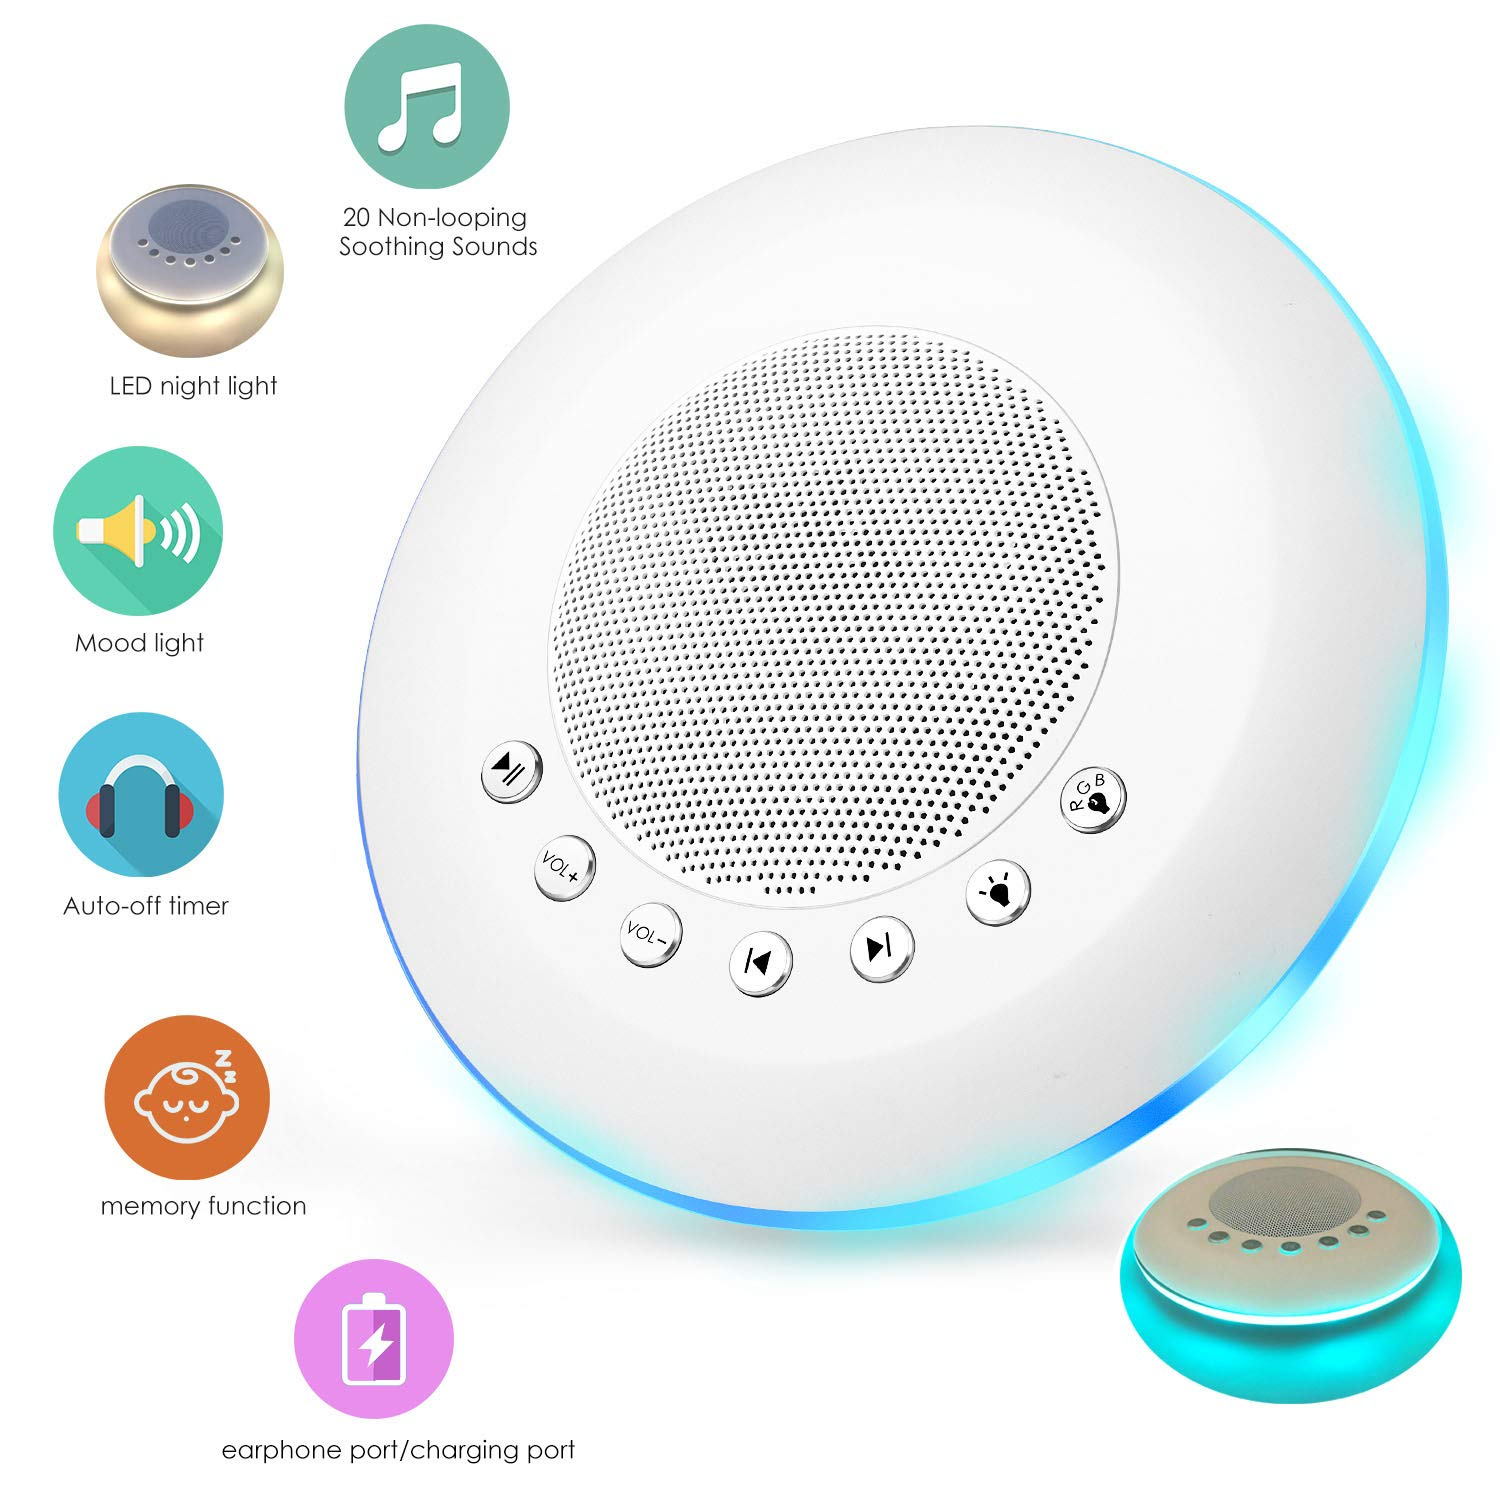 sendcool White Noise Sound Machine for Sleeping, 20 Non-Looping Soothing Sounds Lullaby Colorful Night Light Timing Baby Therapy Sound Machine, Auto-Off Timer Battery or USB Output Charger (White) by sendcool